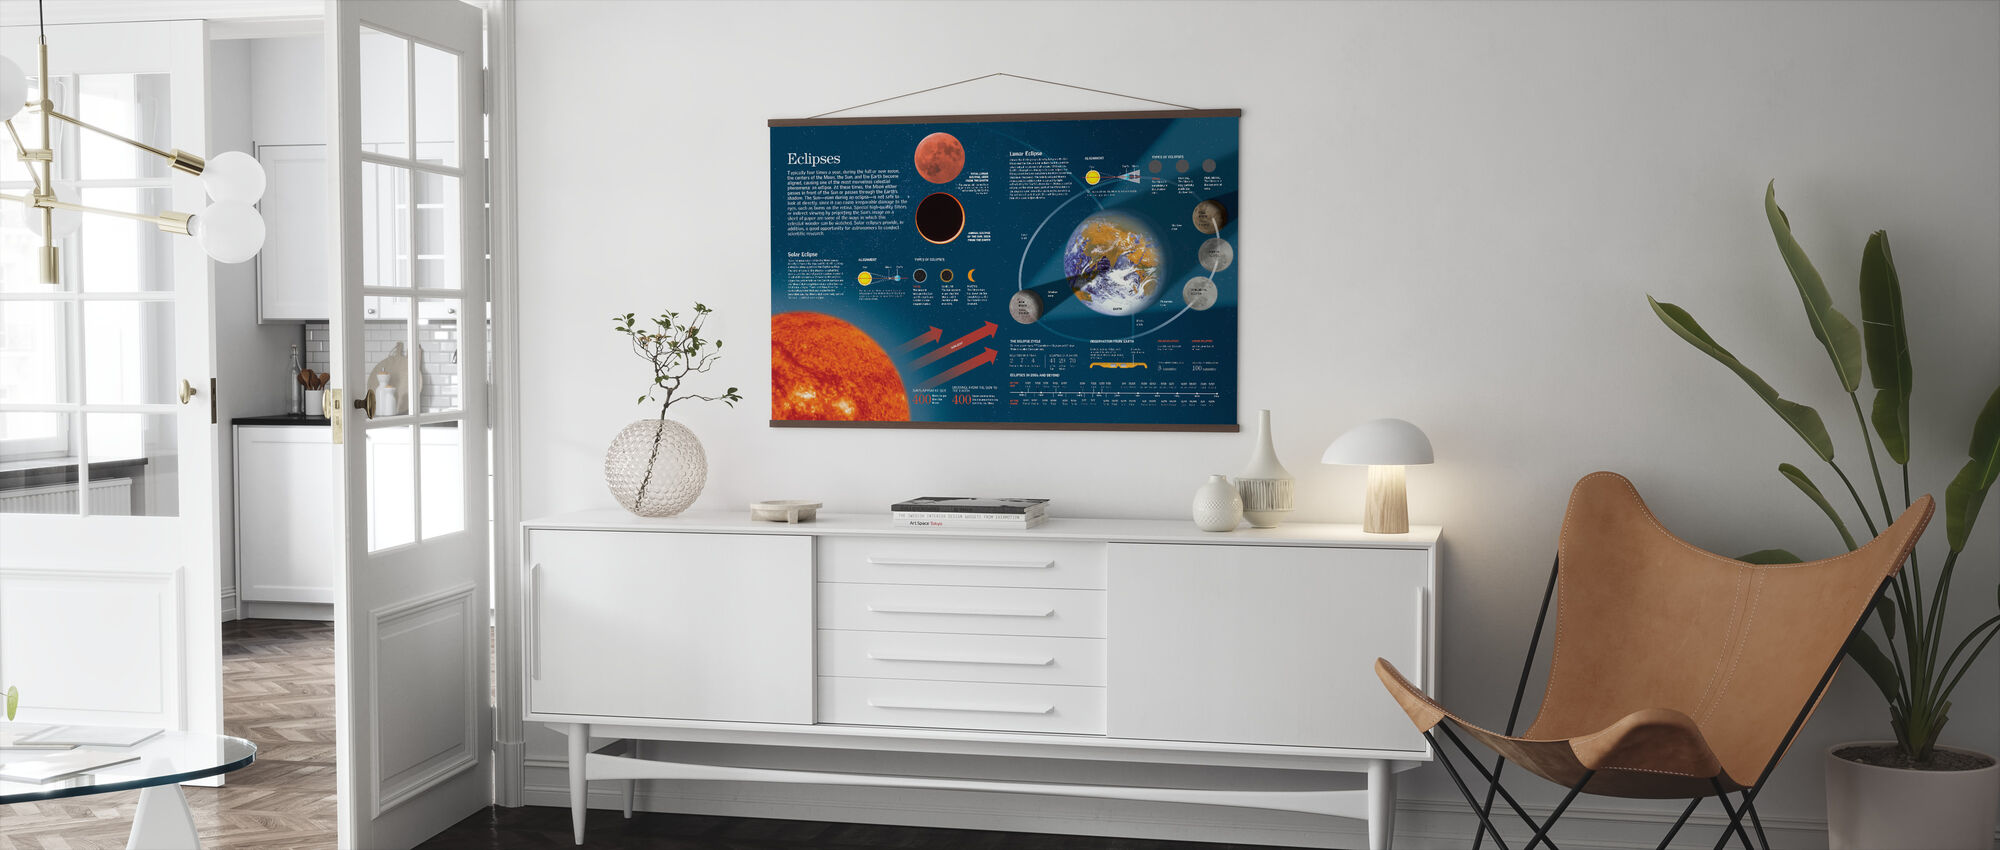 Eclipses - Poster - Living Room